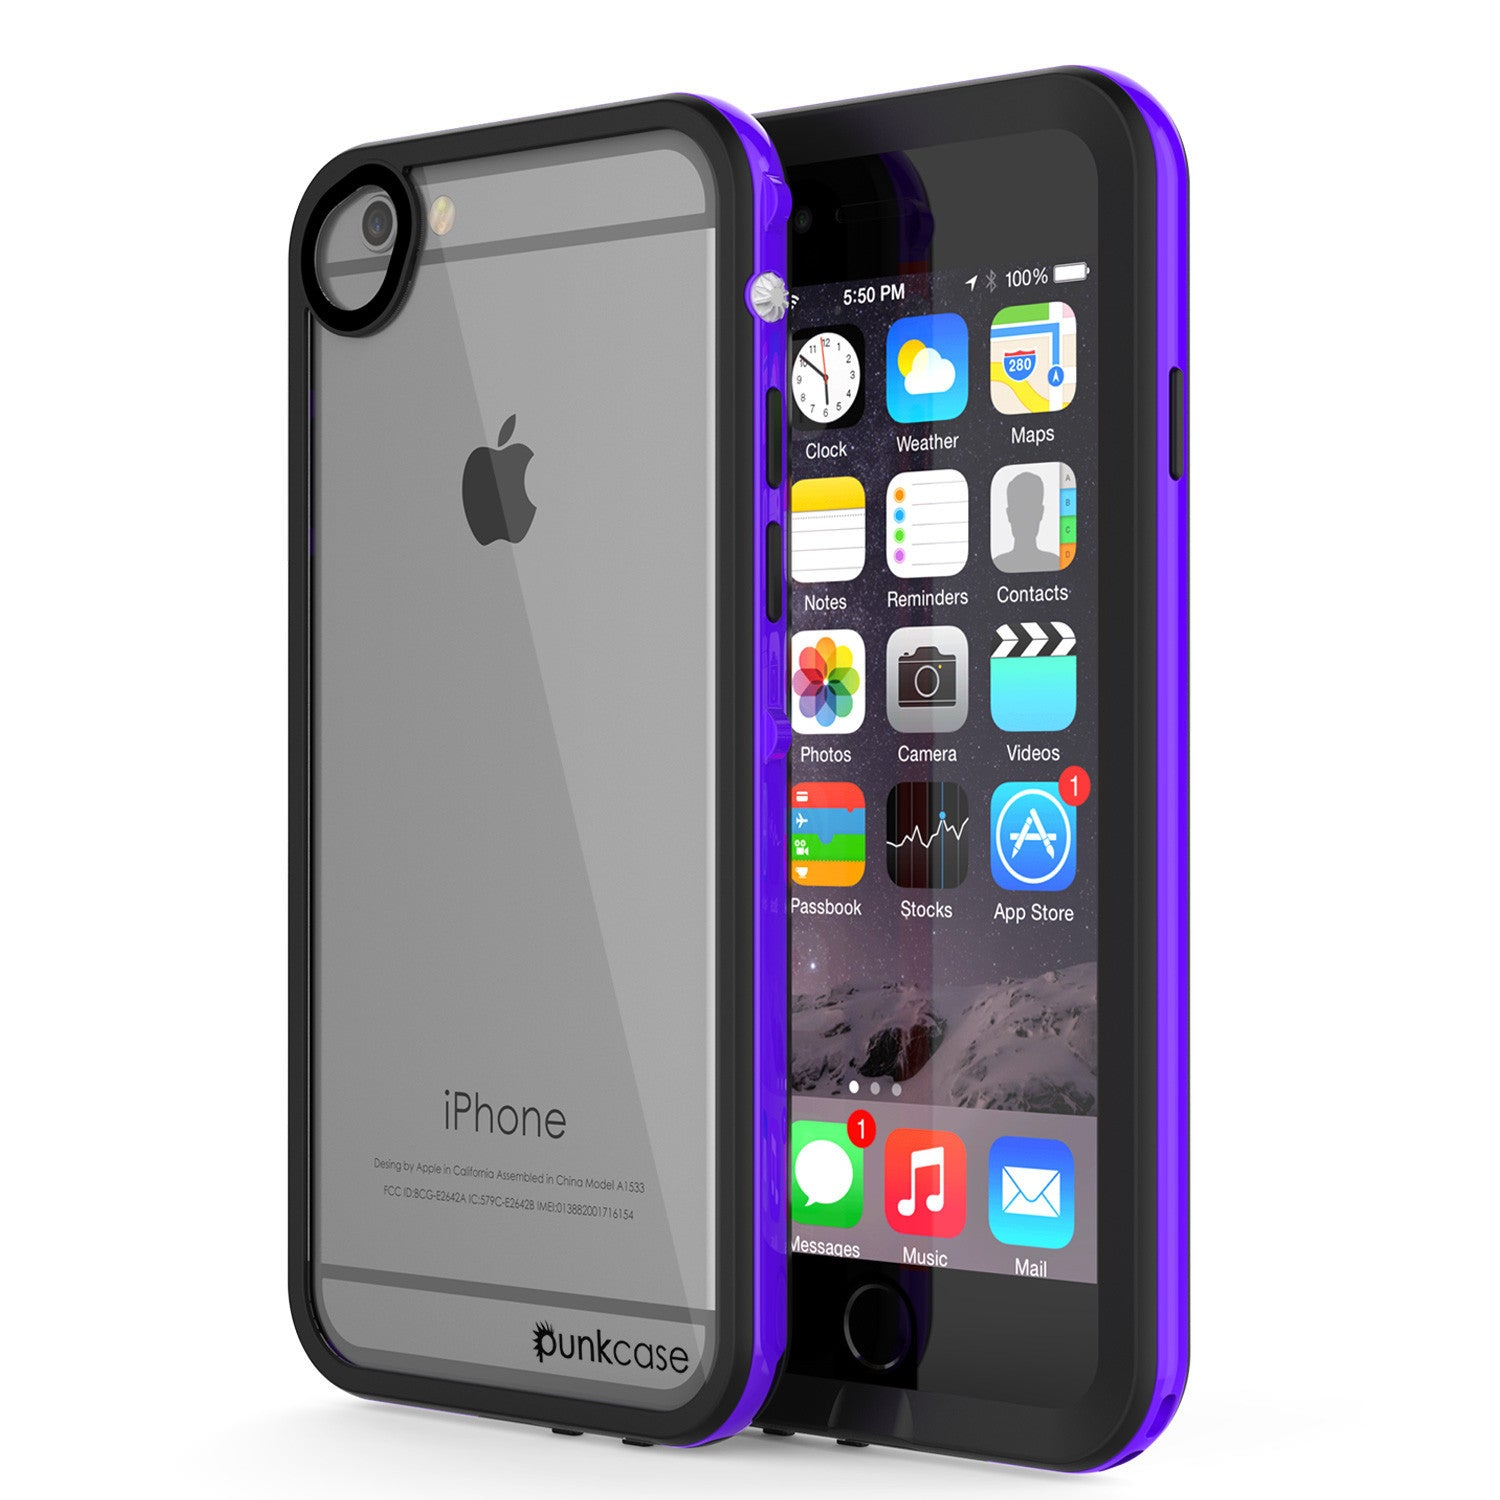 Apple iPhone 7/6s/6 Waterproof Case, PUNKcase CRYSTAL 2.0 Purple W/ Attached Screen Protector | Warranty